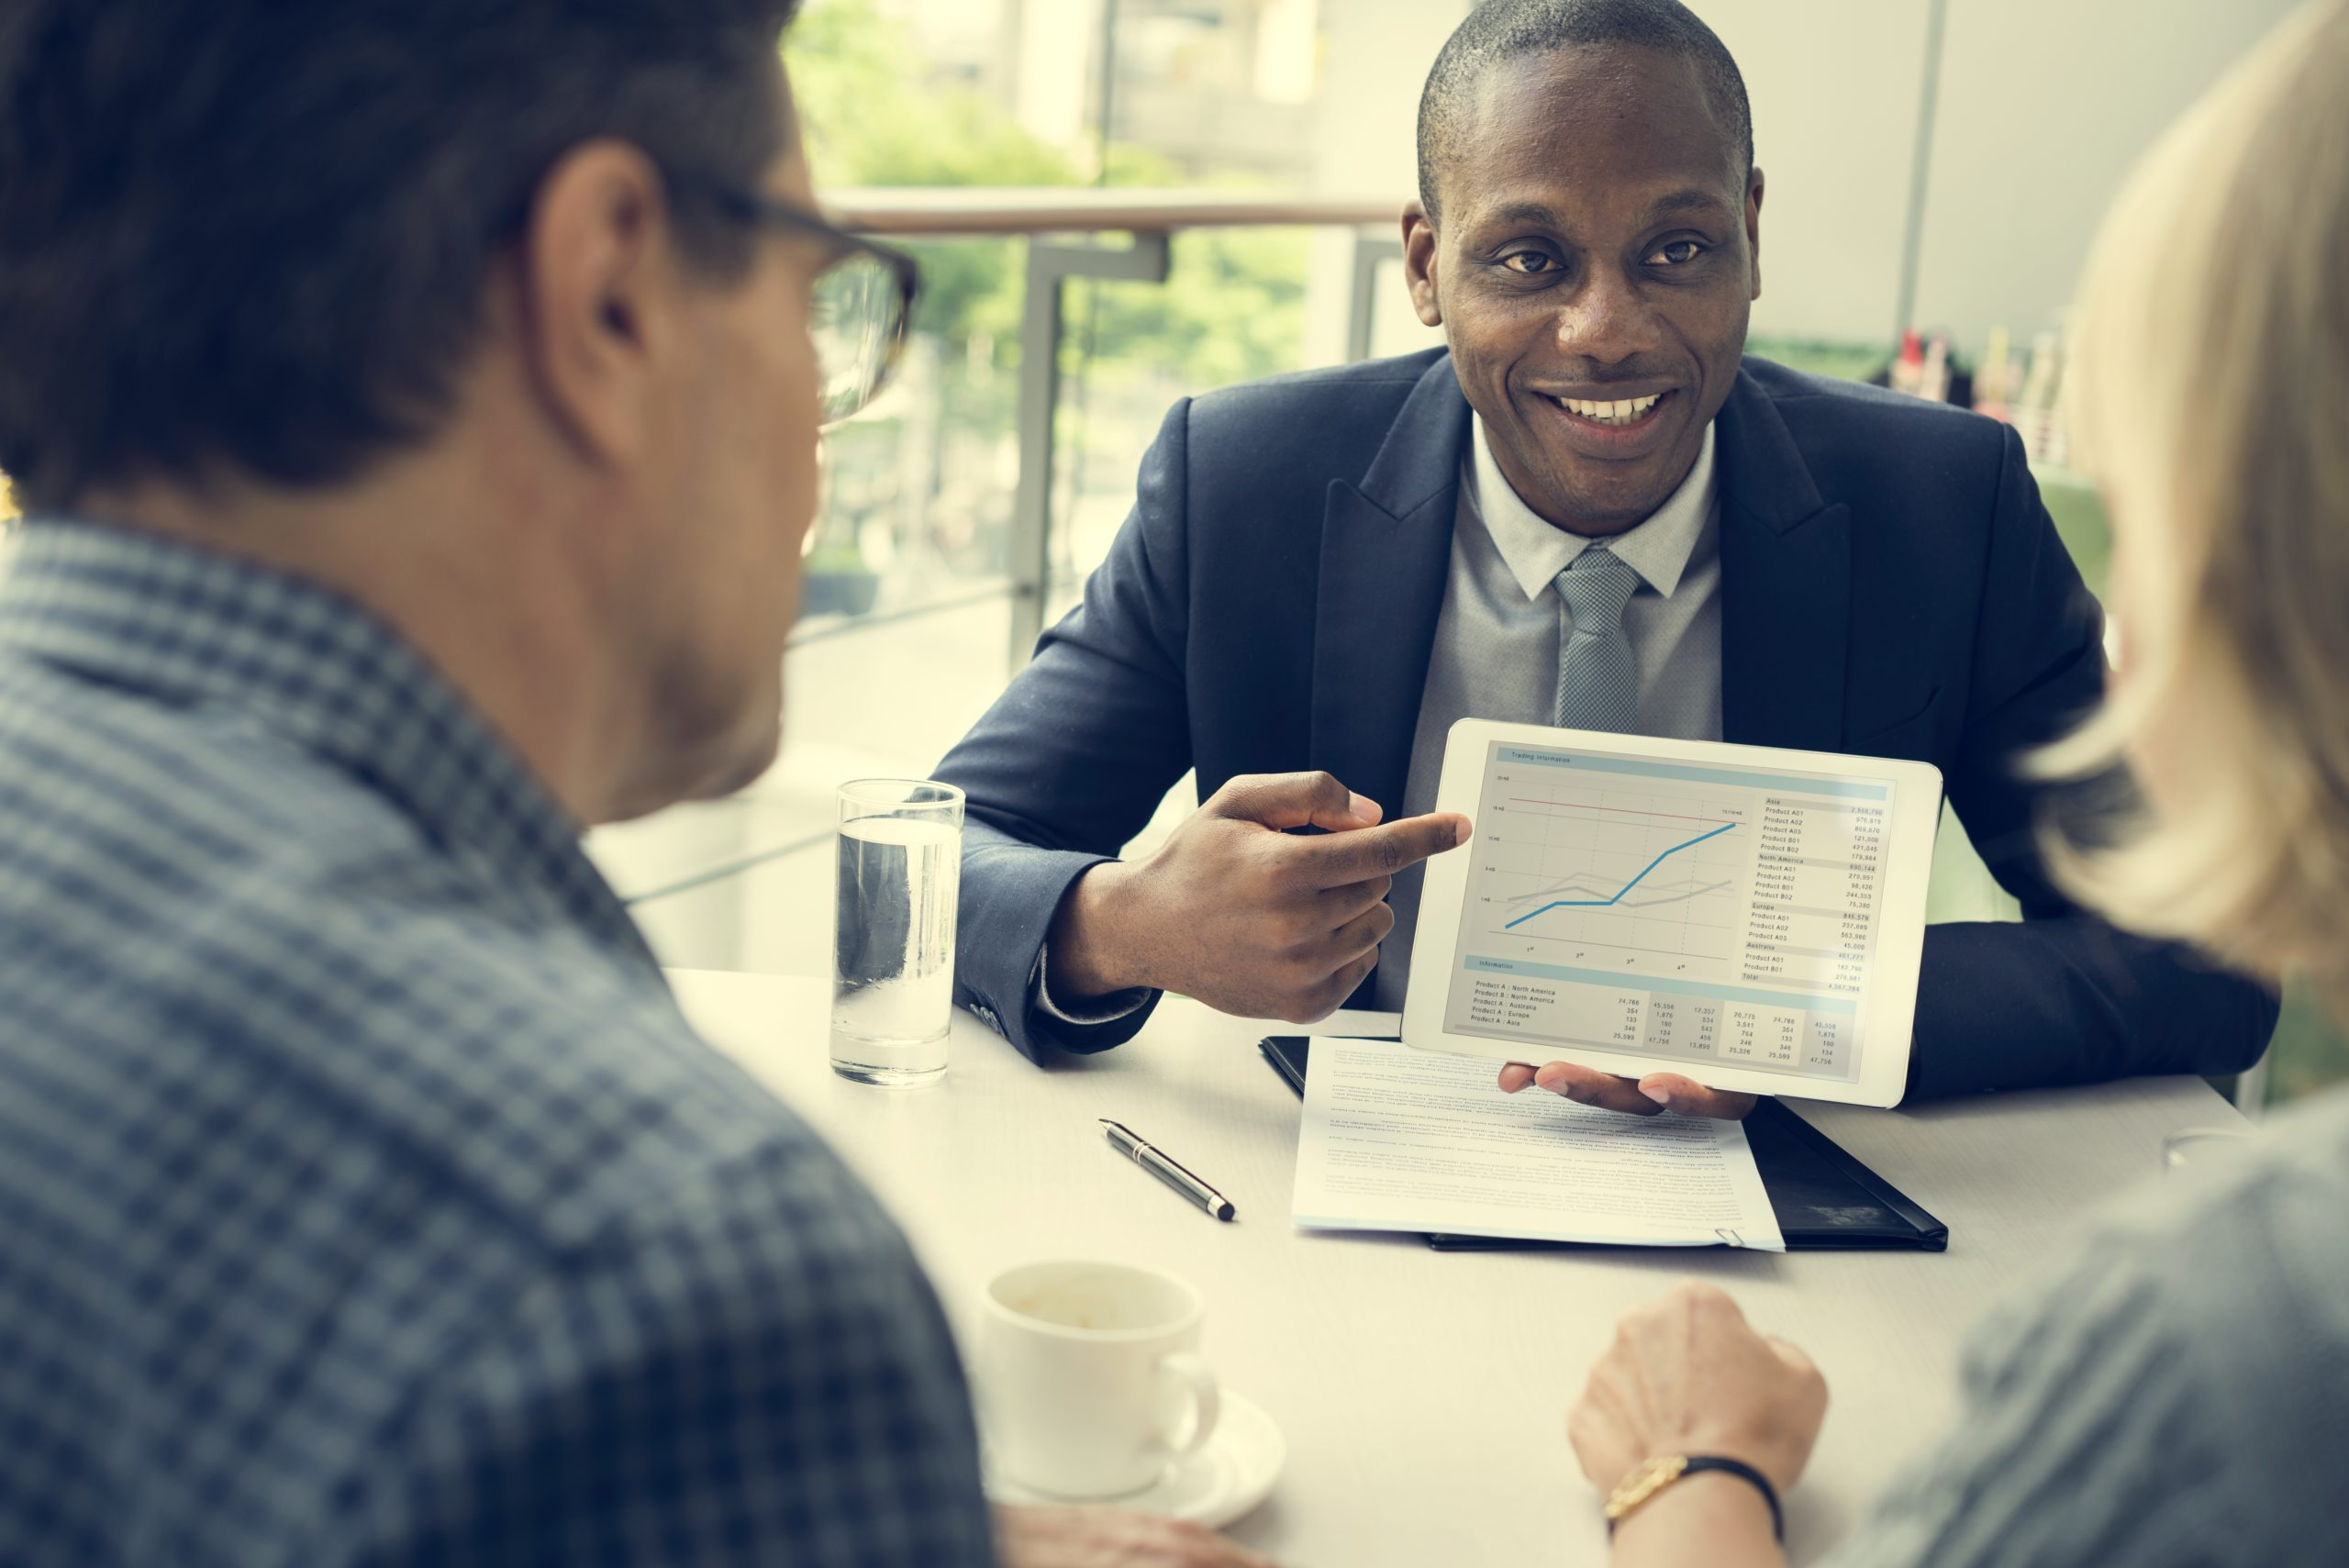 Investment advisor showing information and graphic to couple